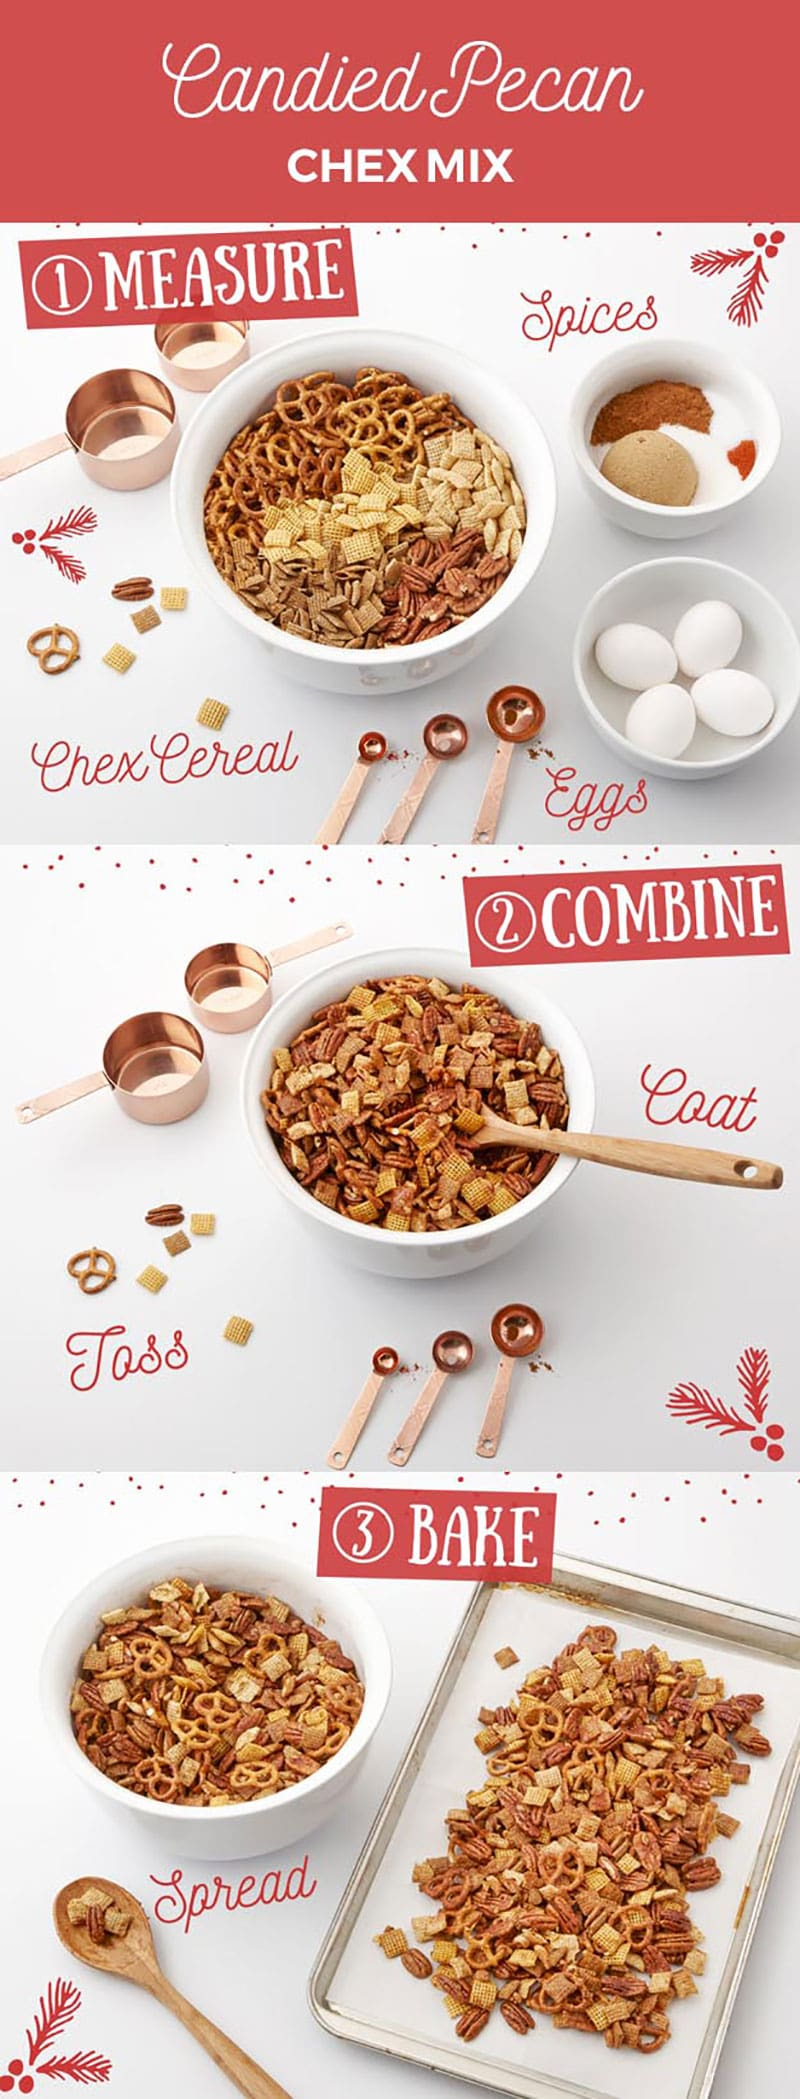 Candied Pecan Chex Mix Recipe, AMAZING!